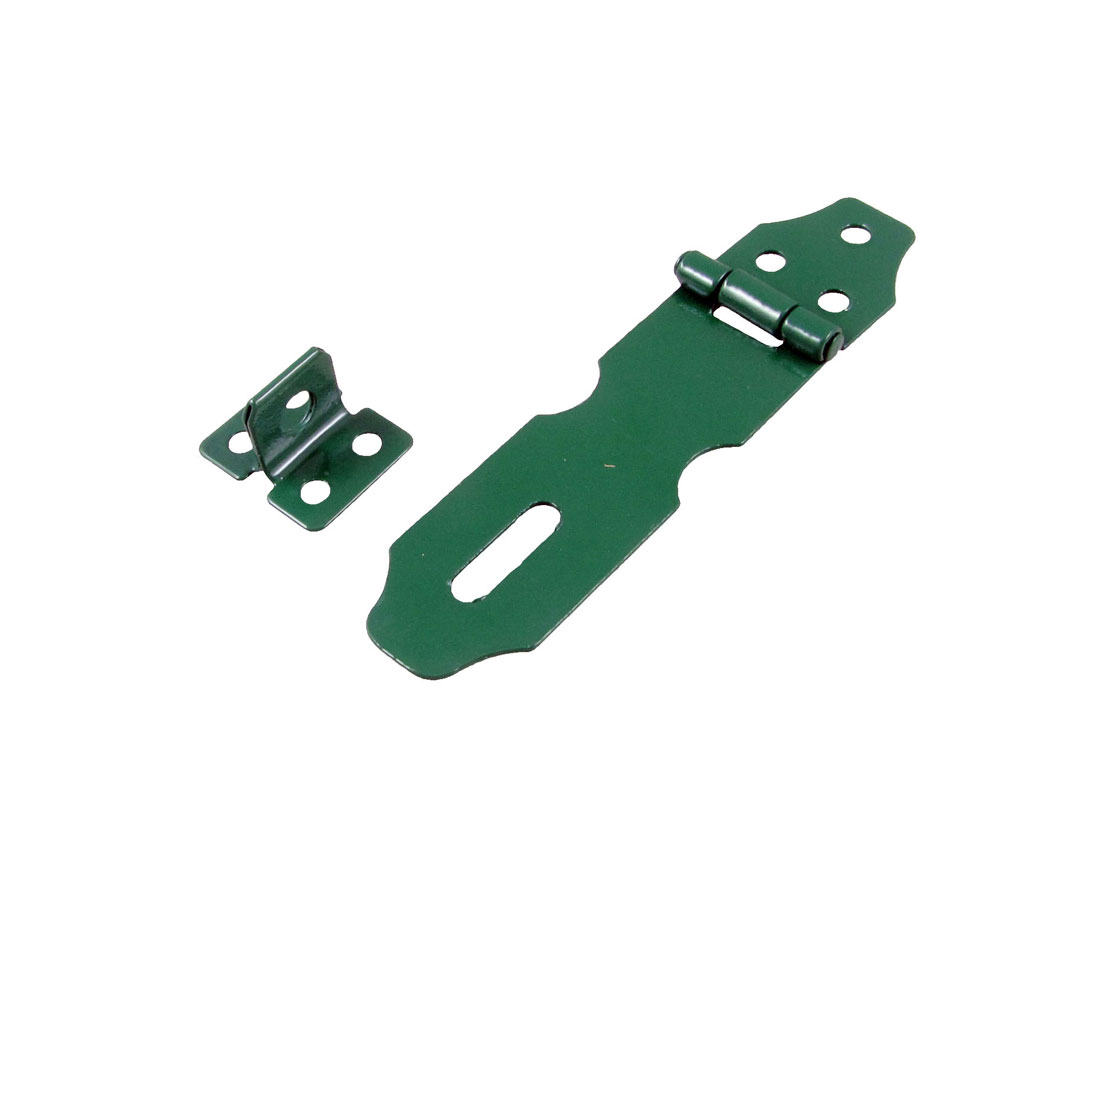 "Green Metal Cabinets Gates Padlock Latch Door 4"" Hasp Staples"